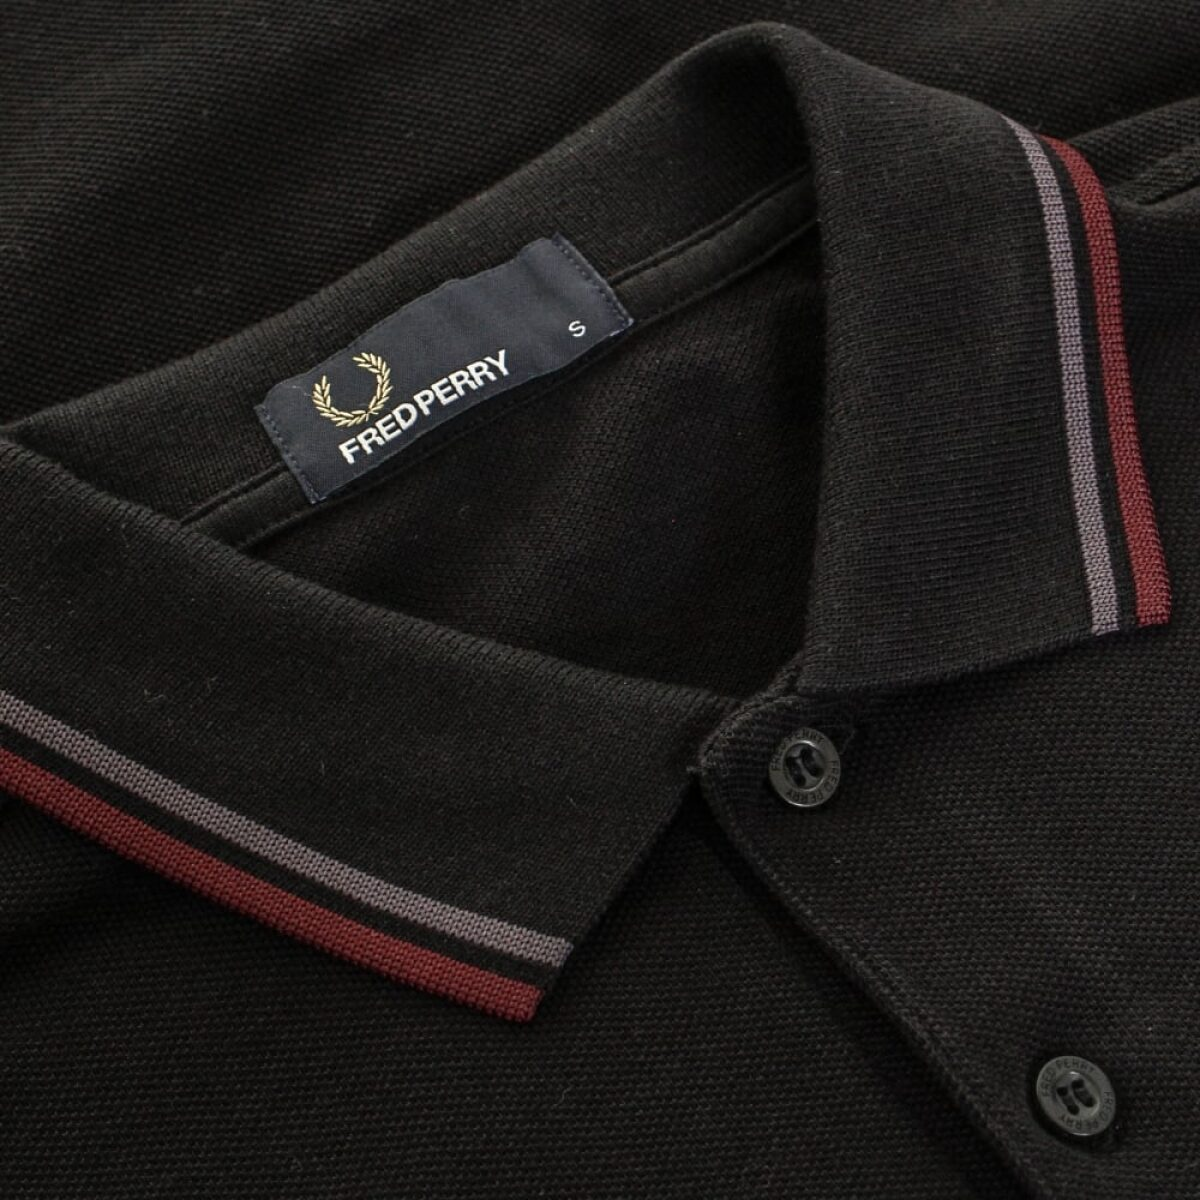 fred perry authentic fred perry twin tipped black ls polo shirt m3636 102 p24818 95664 image